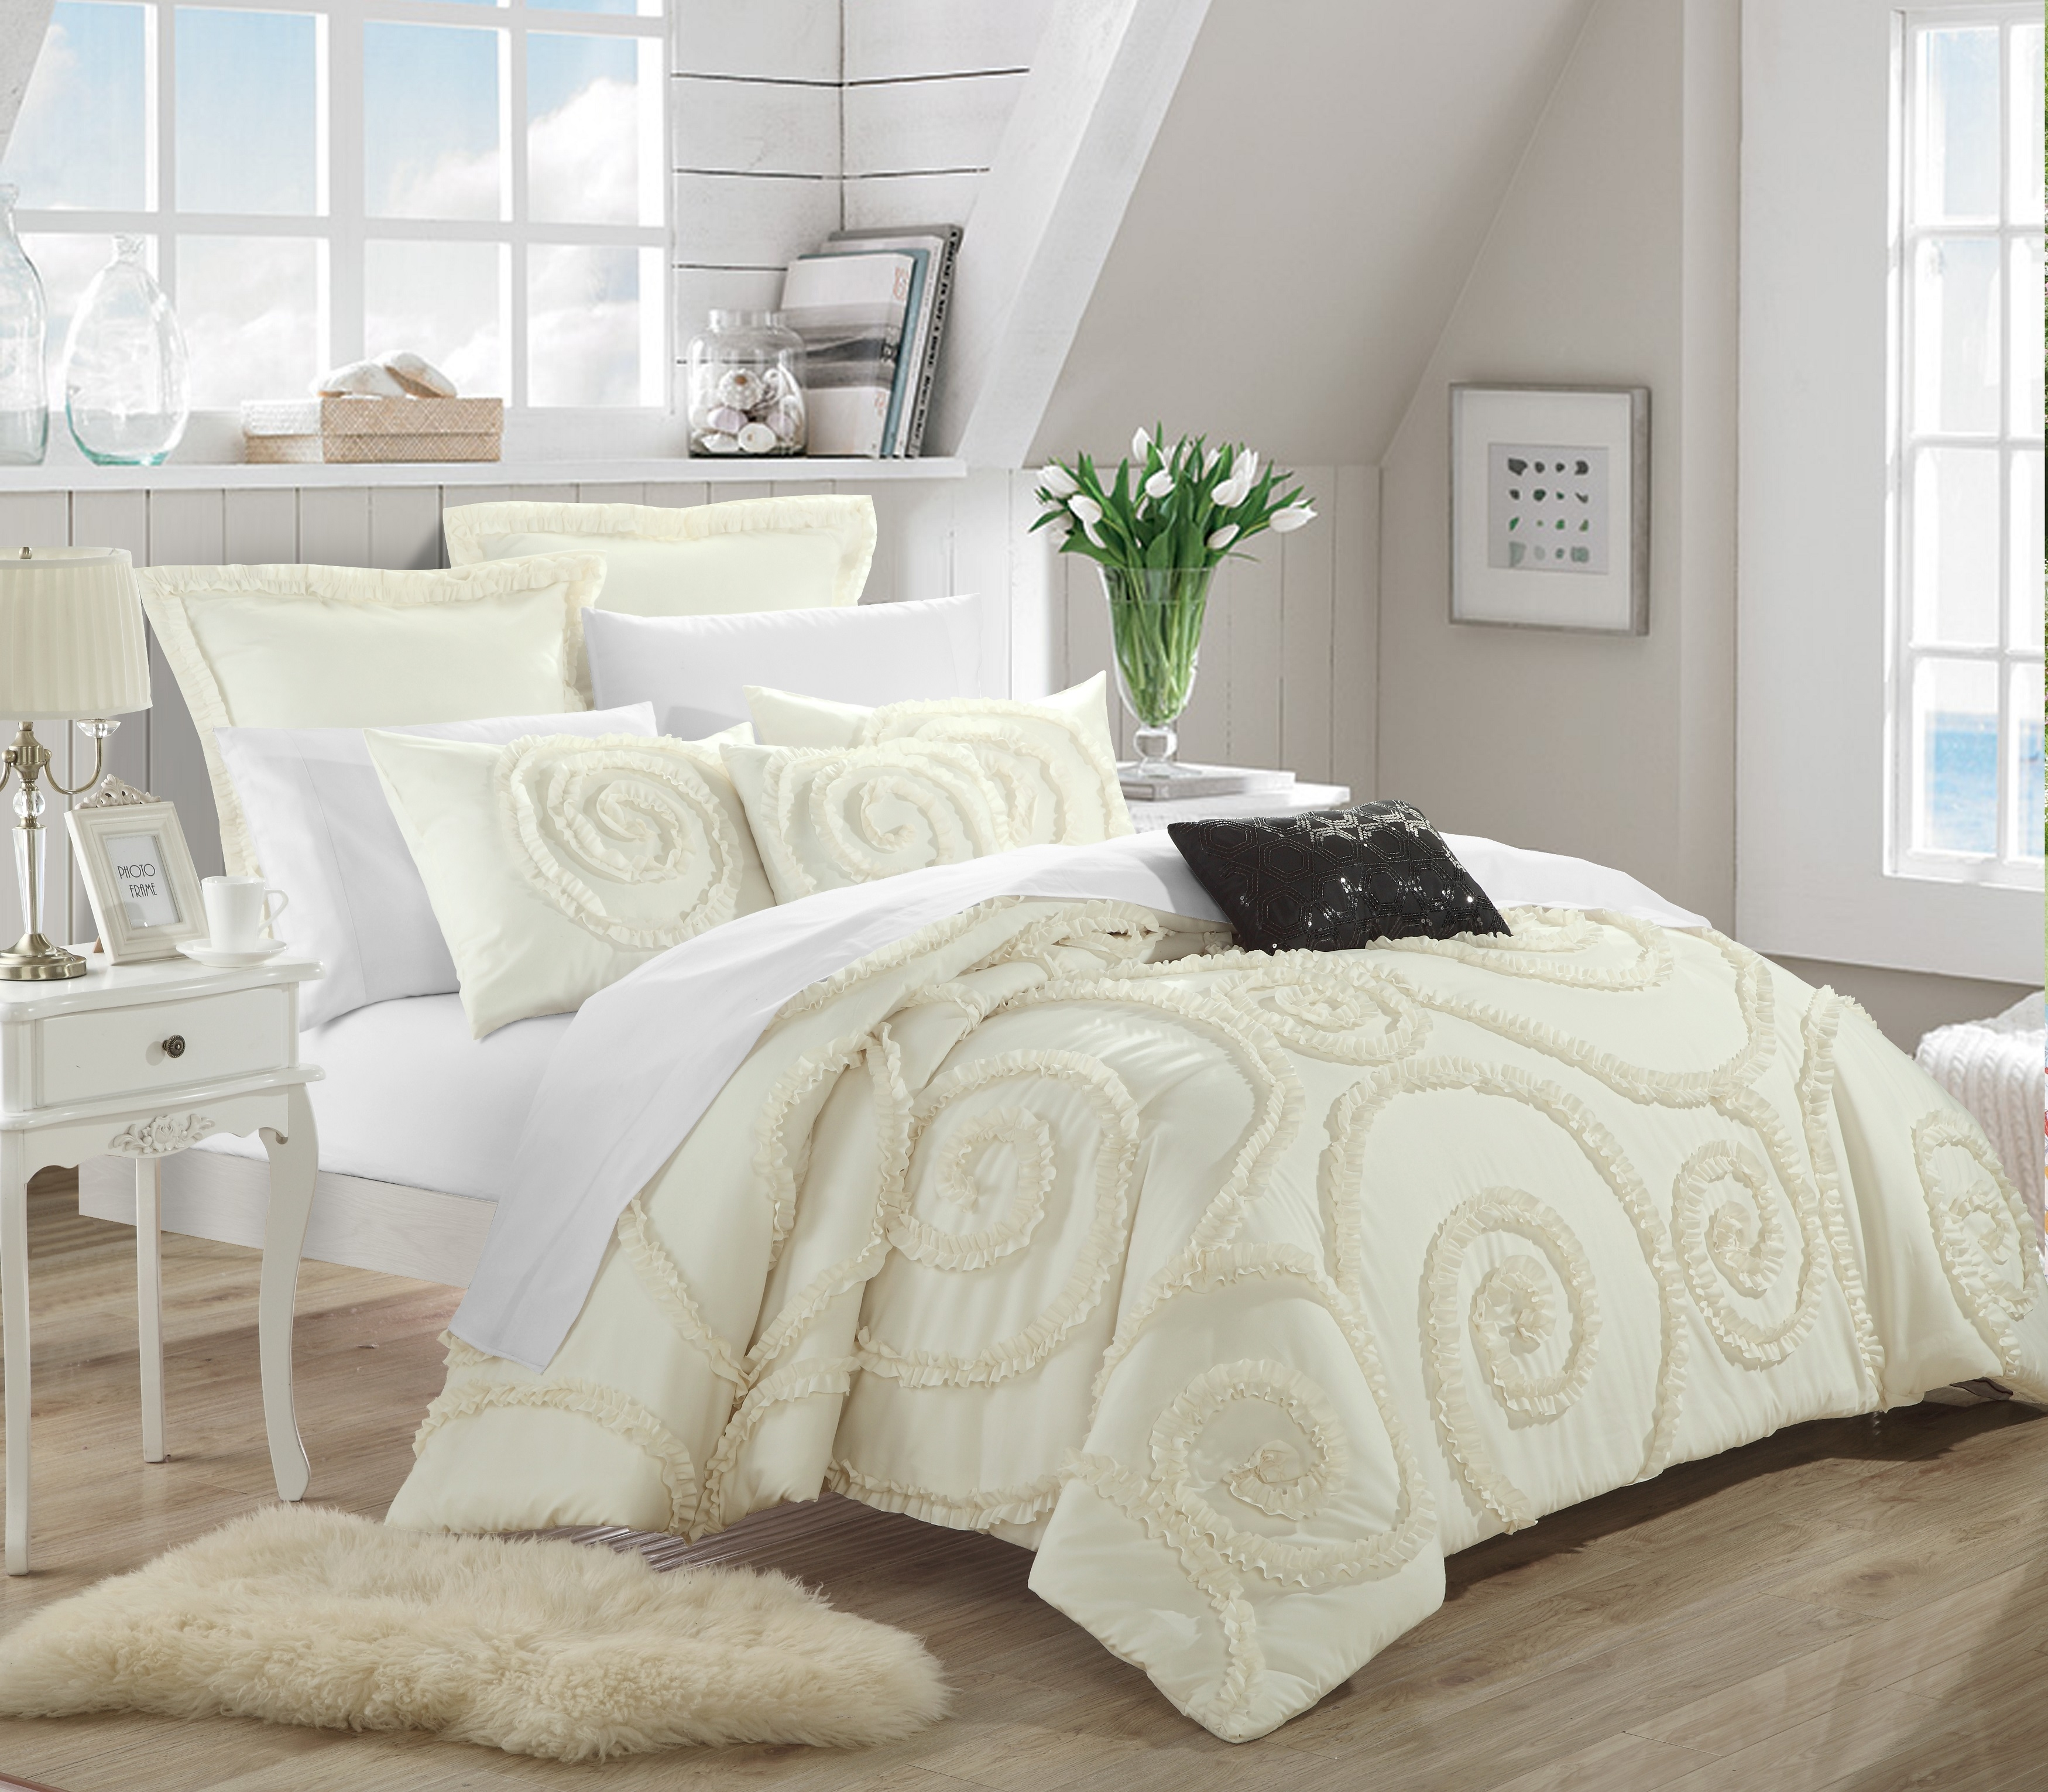 Chic Home Rosalinda 7-piece Ruffled Etched Embroidery Comforter Set, Bed In A Bag, 4 Shams And 2 Throw Pillows Included - Beige, Queen